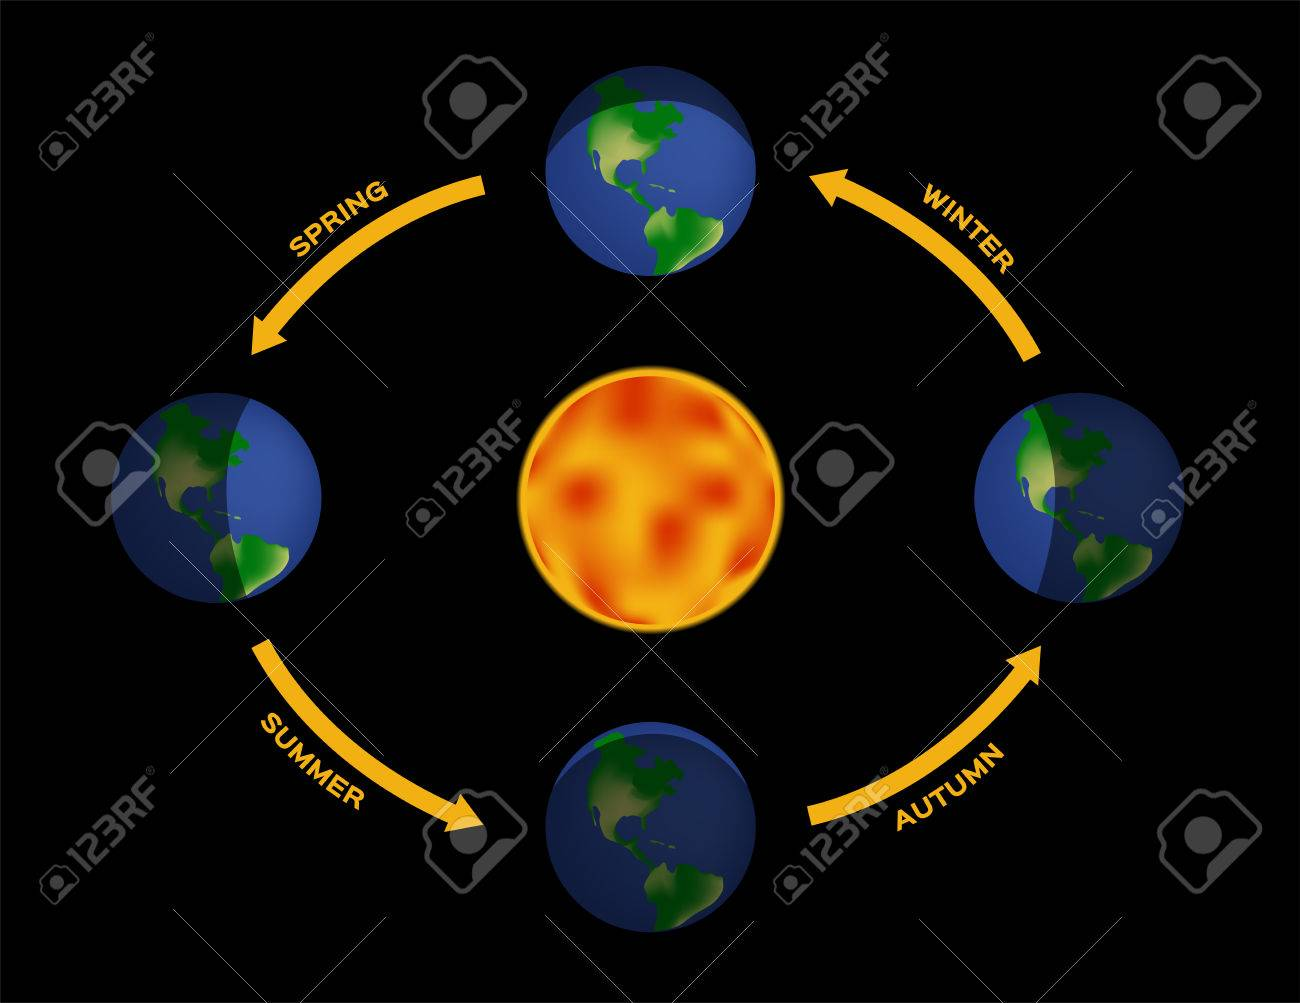 Seasons illumination of the earth during various seasons the seasons illumination of the earth during various seasons the earths movement around the sun pooptronica